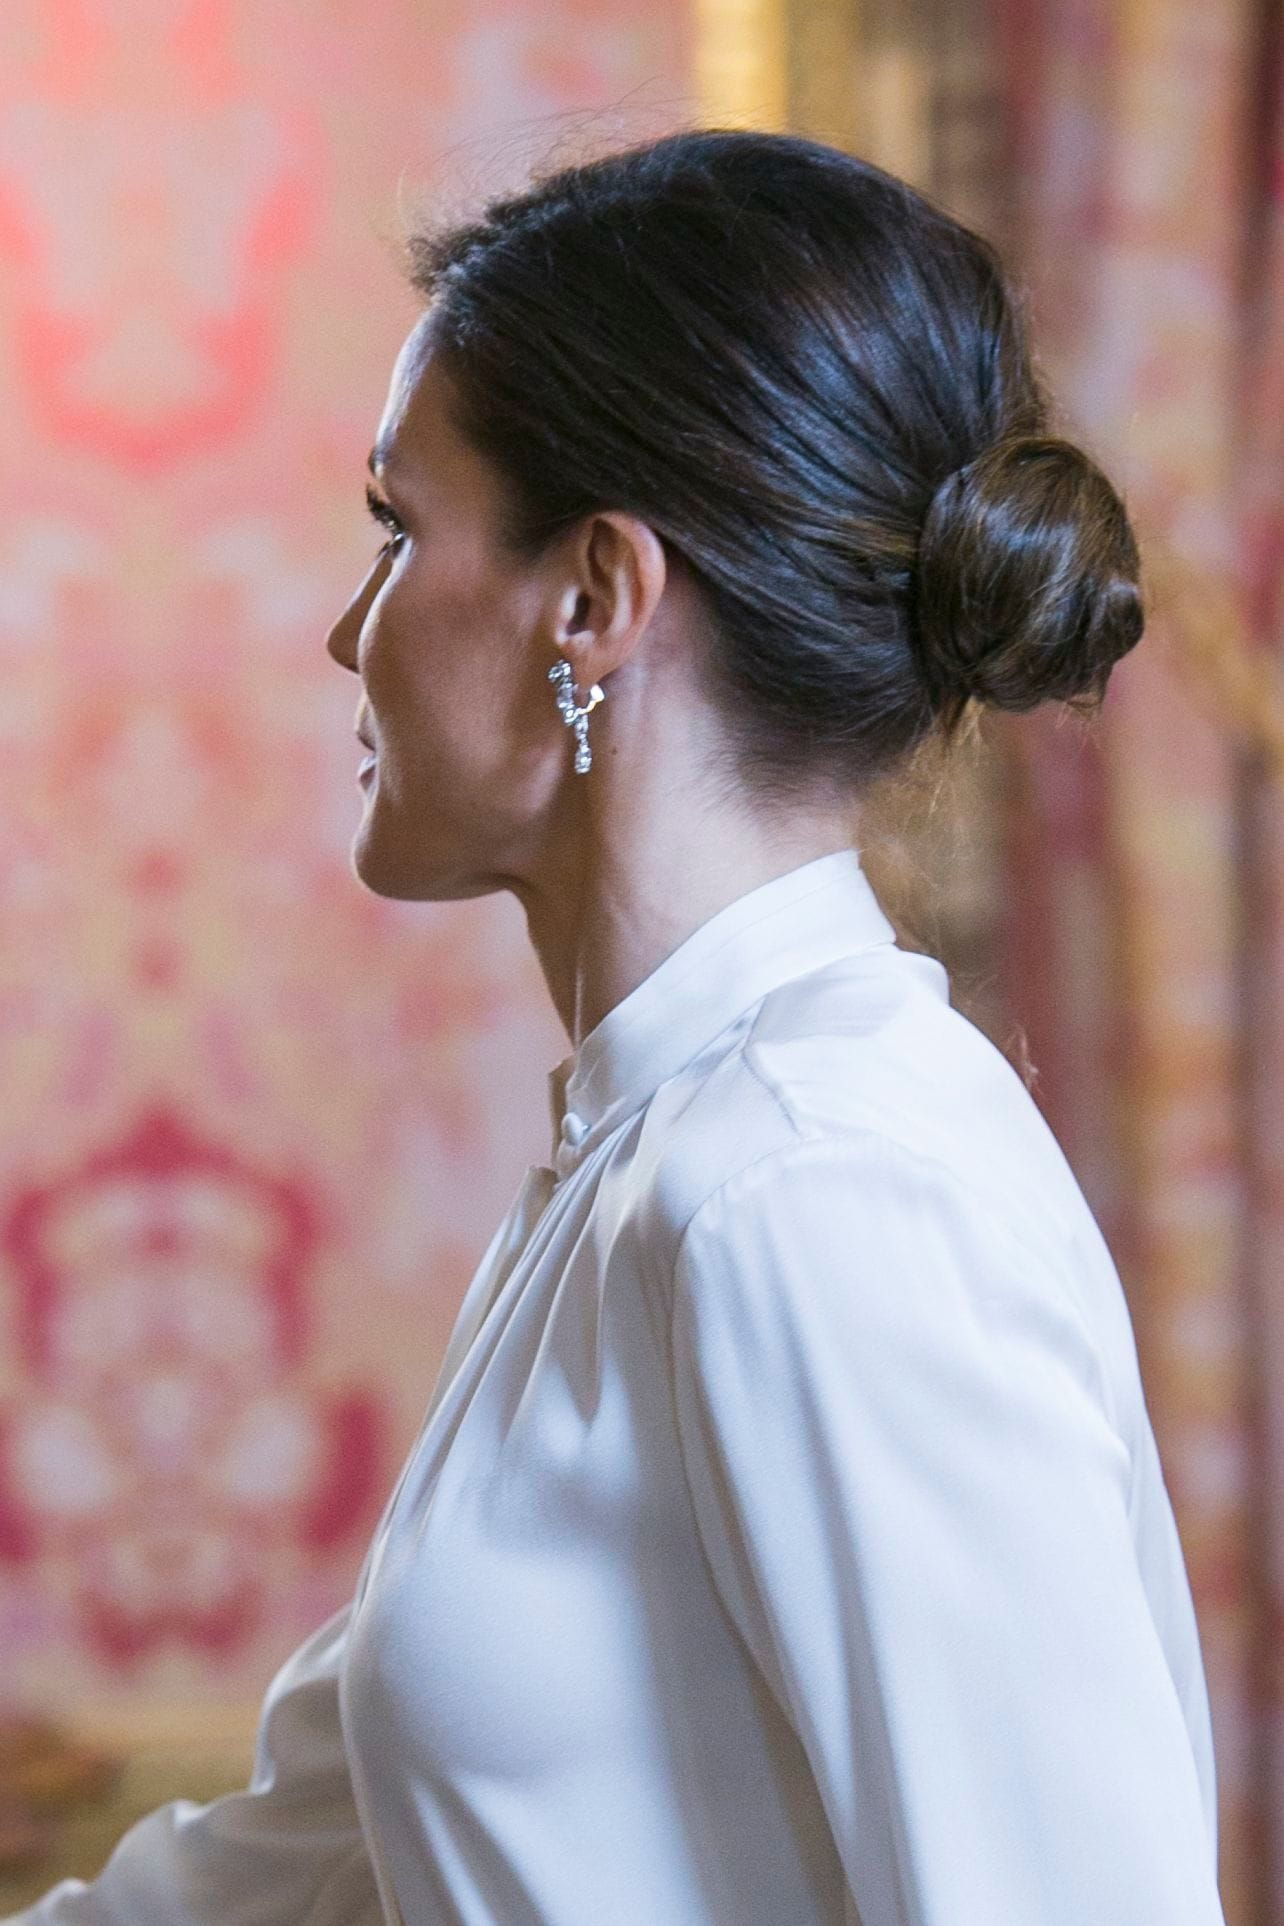 Wedding guest hair: Side shot of a woman with dark brown hair styled into a low, polished bun wearing a white blouse